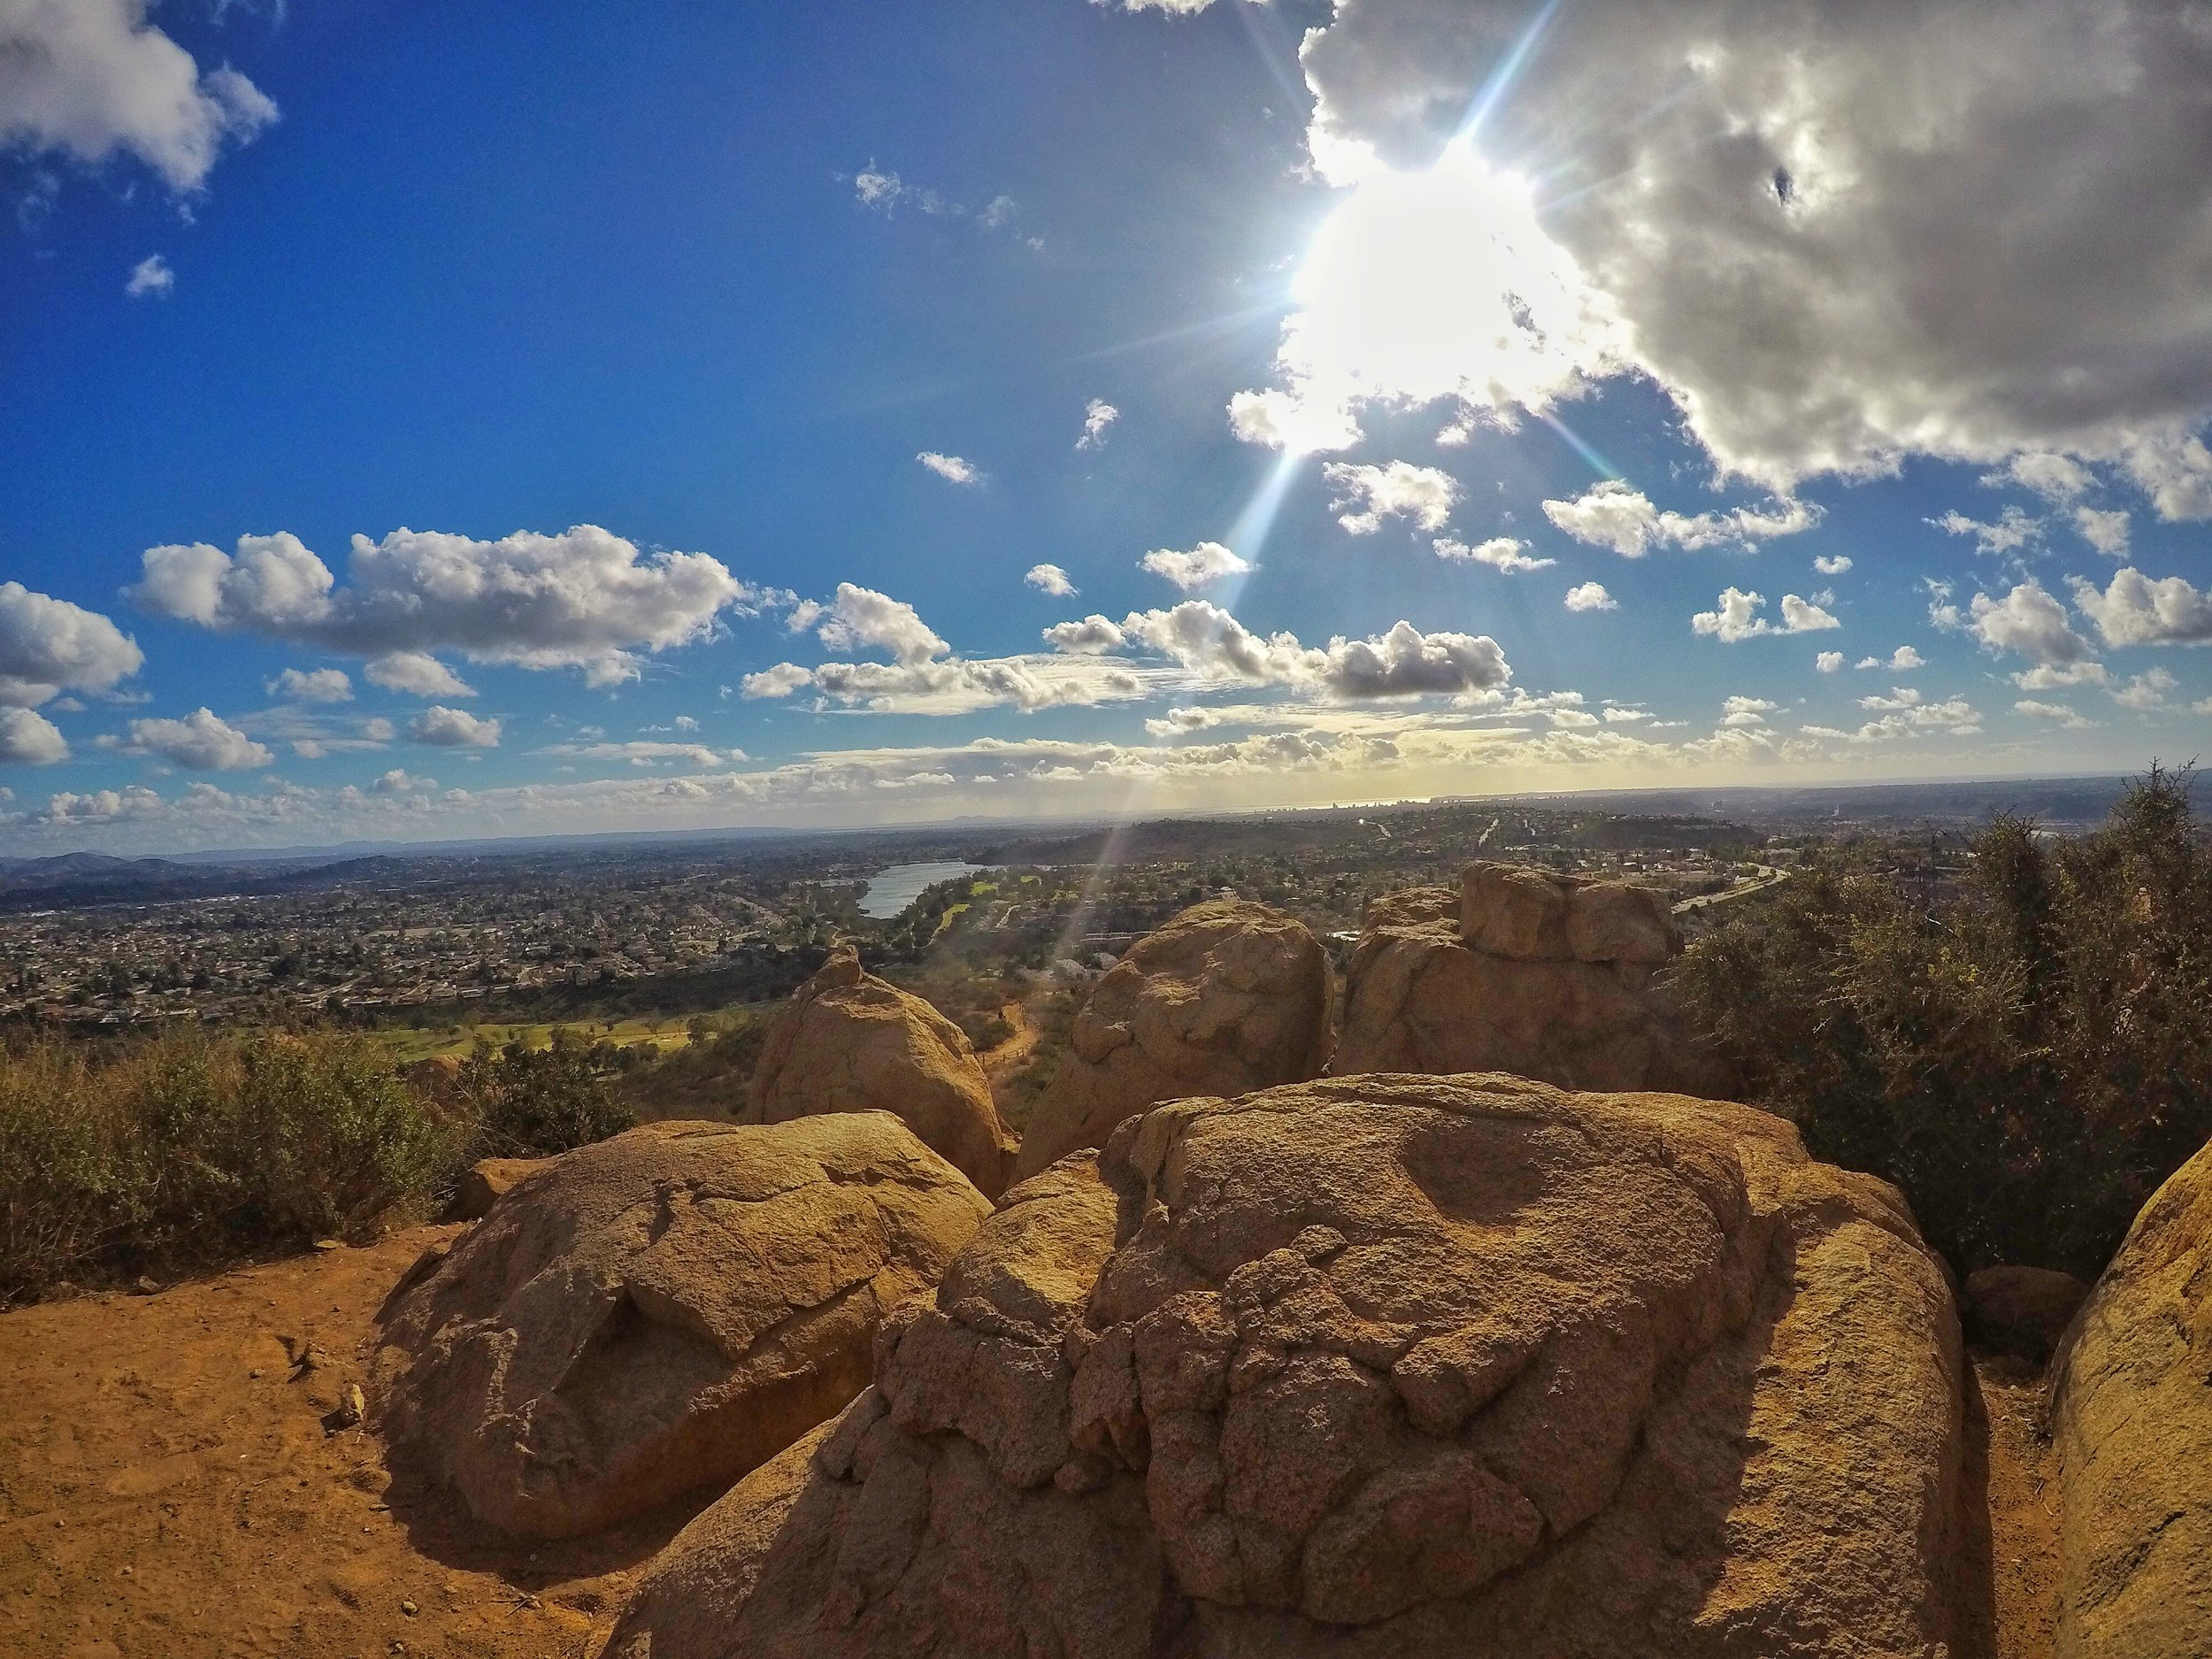 Even though it is popular, the Cowles Mountain main trail has some excellent views of the city and beyond.